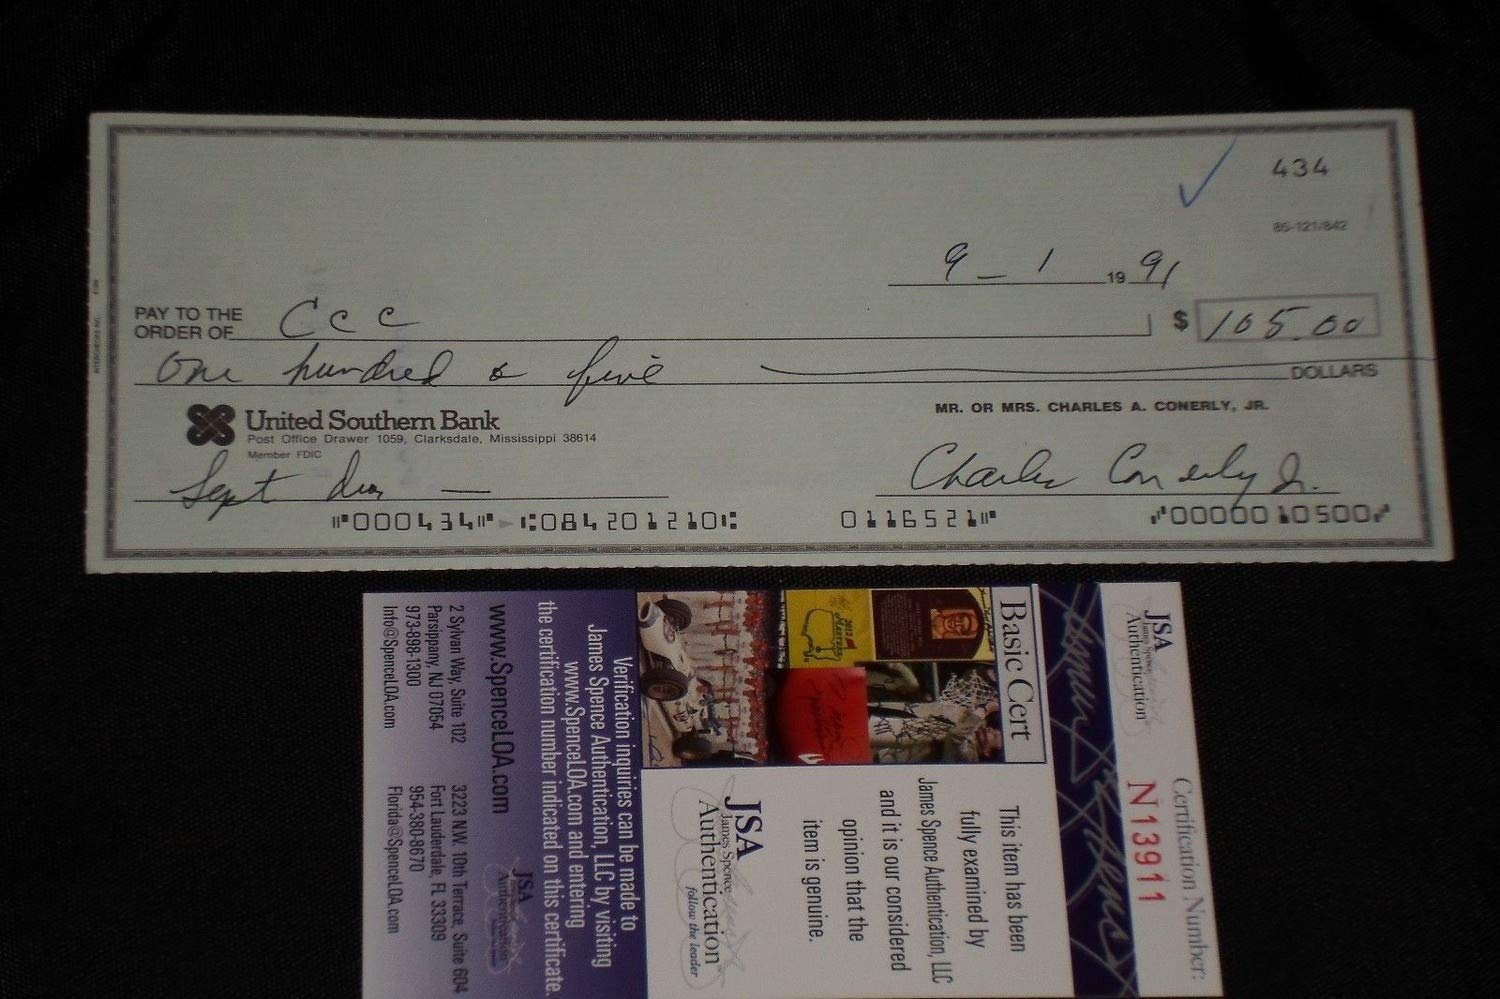 Charlie Conerly Autographed Signed Check New York Giants JSA Authentic Memorabilia Certified